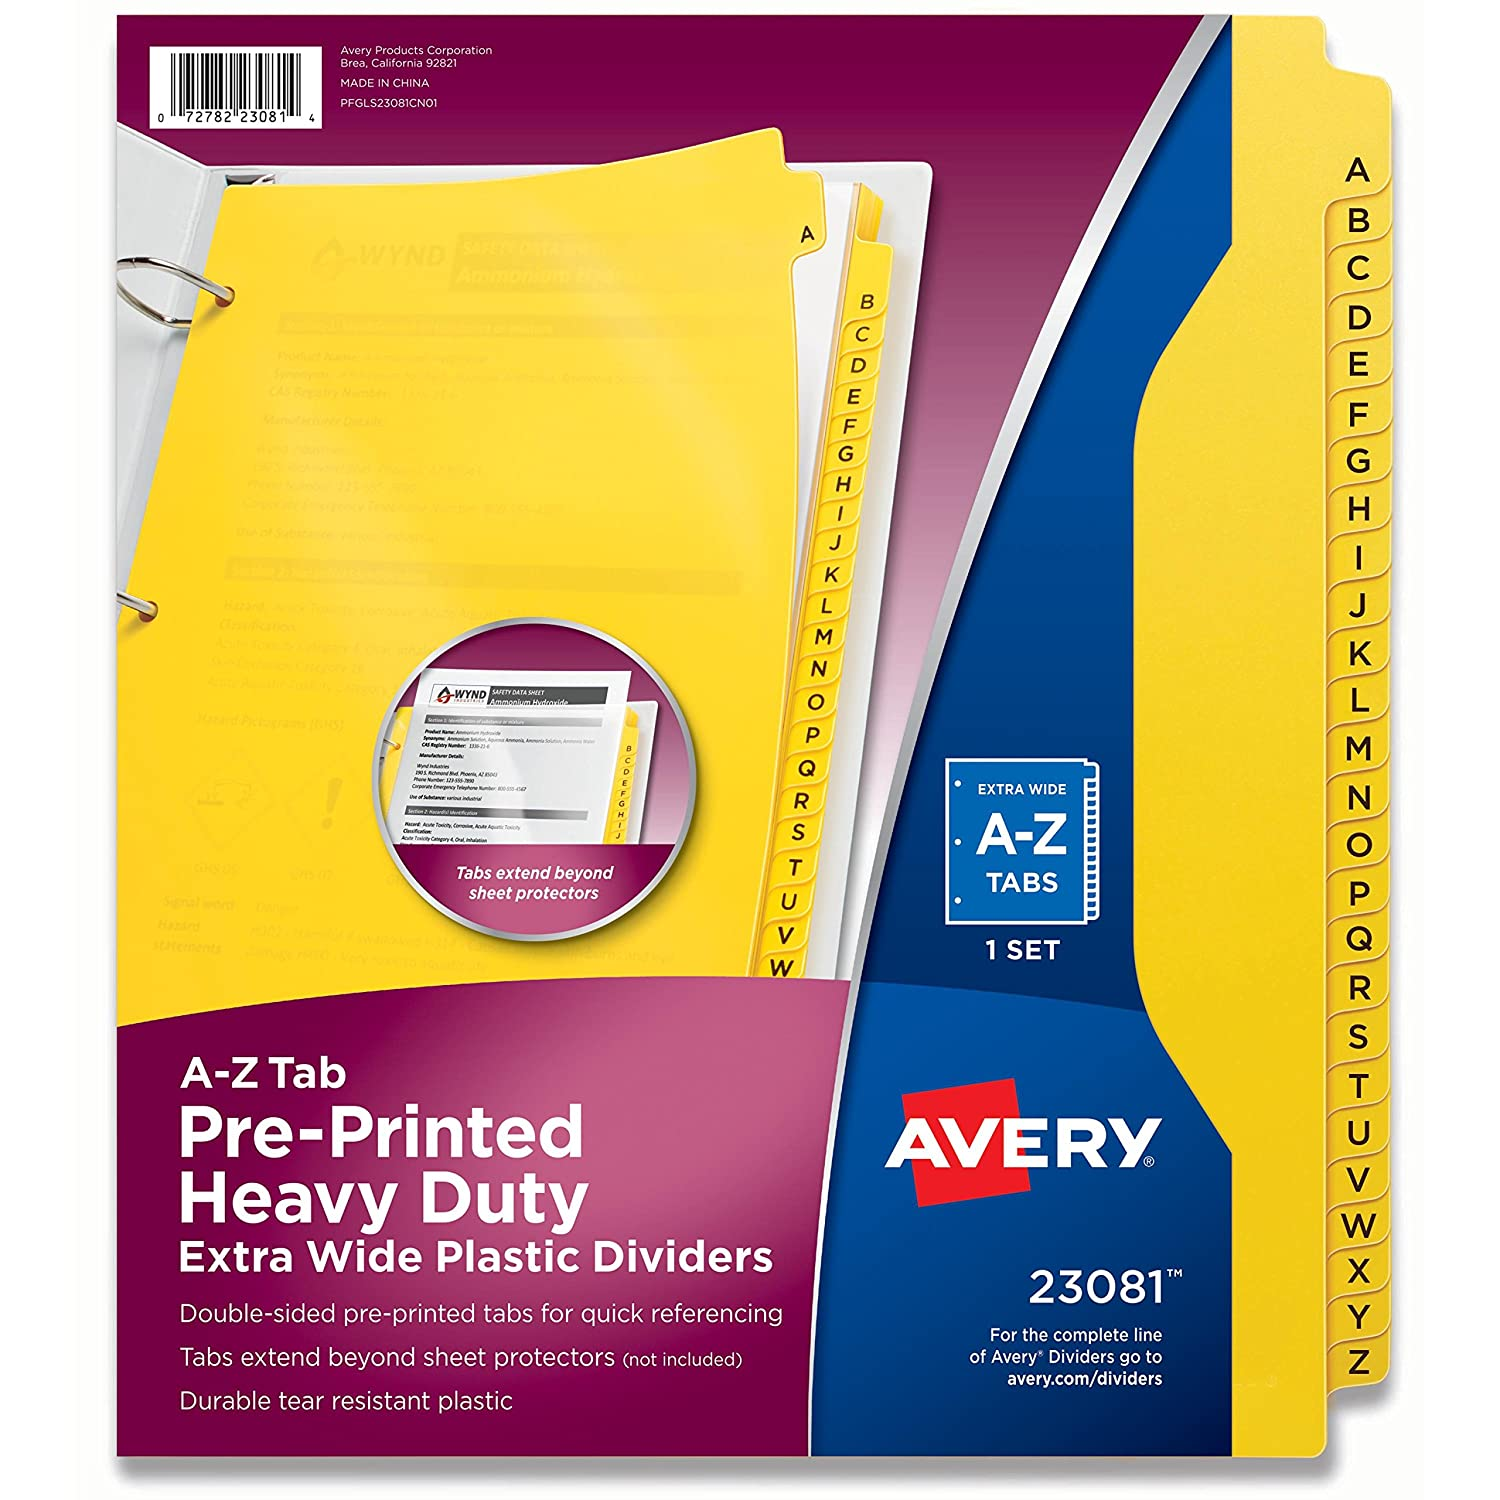 Avery Heavy-Duty Plastic Industrial Dividers, 26 A-Z Tabs, Yellow (23081) Avery Products Corporation